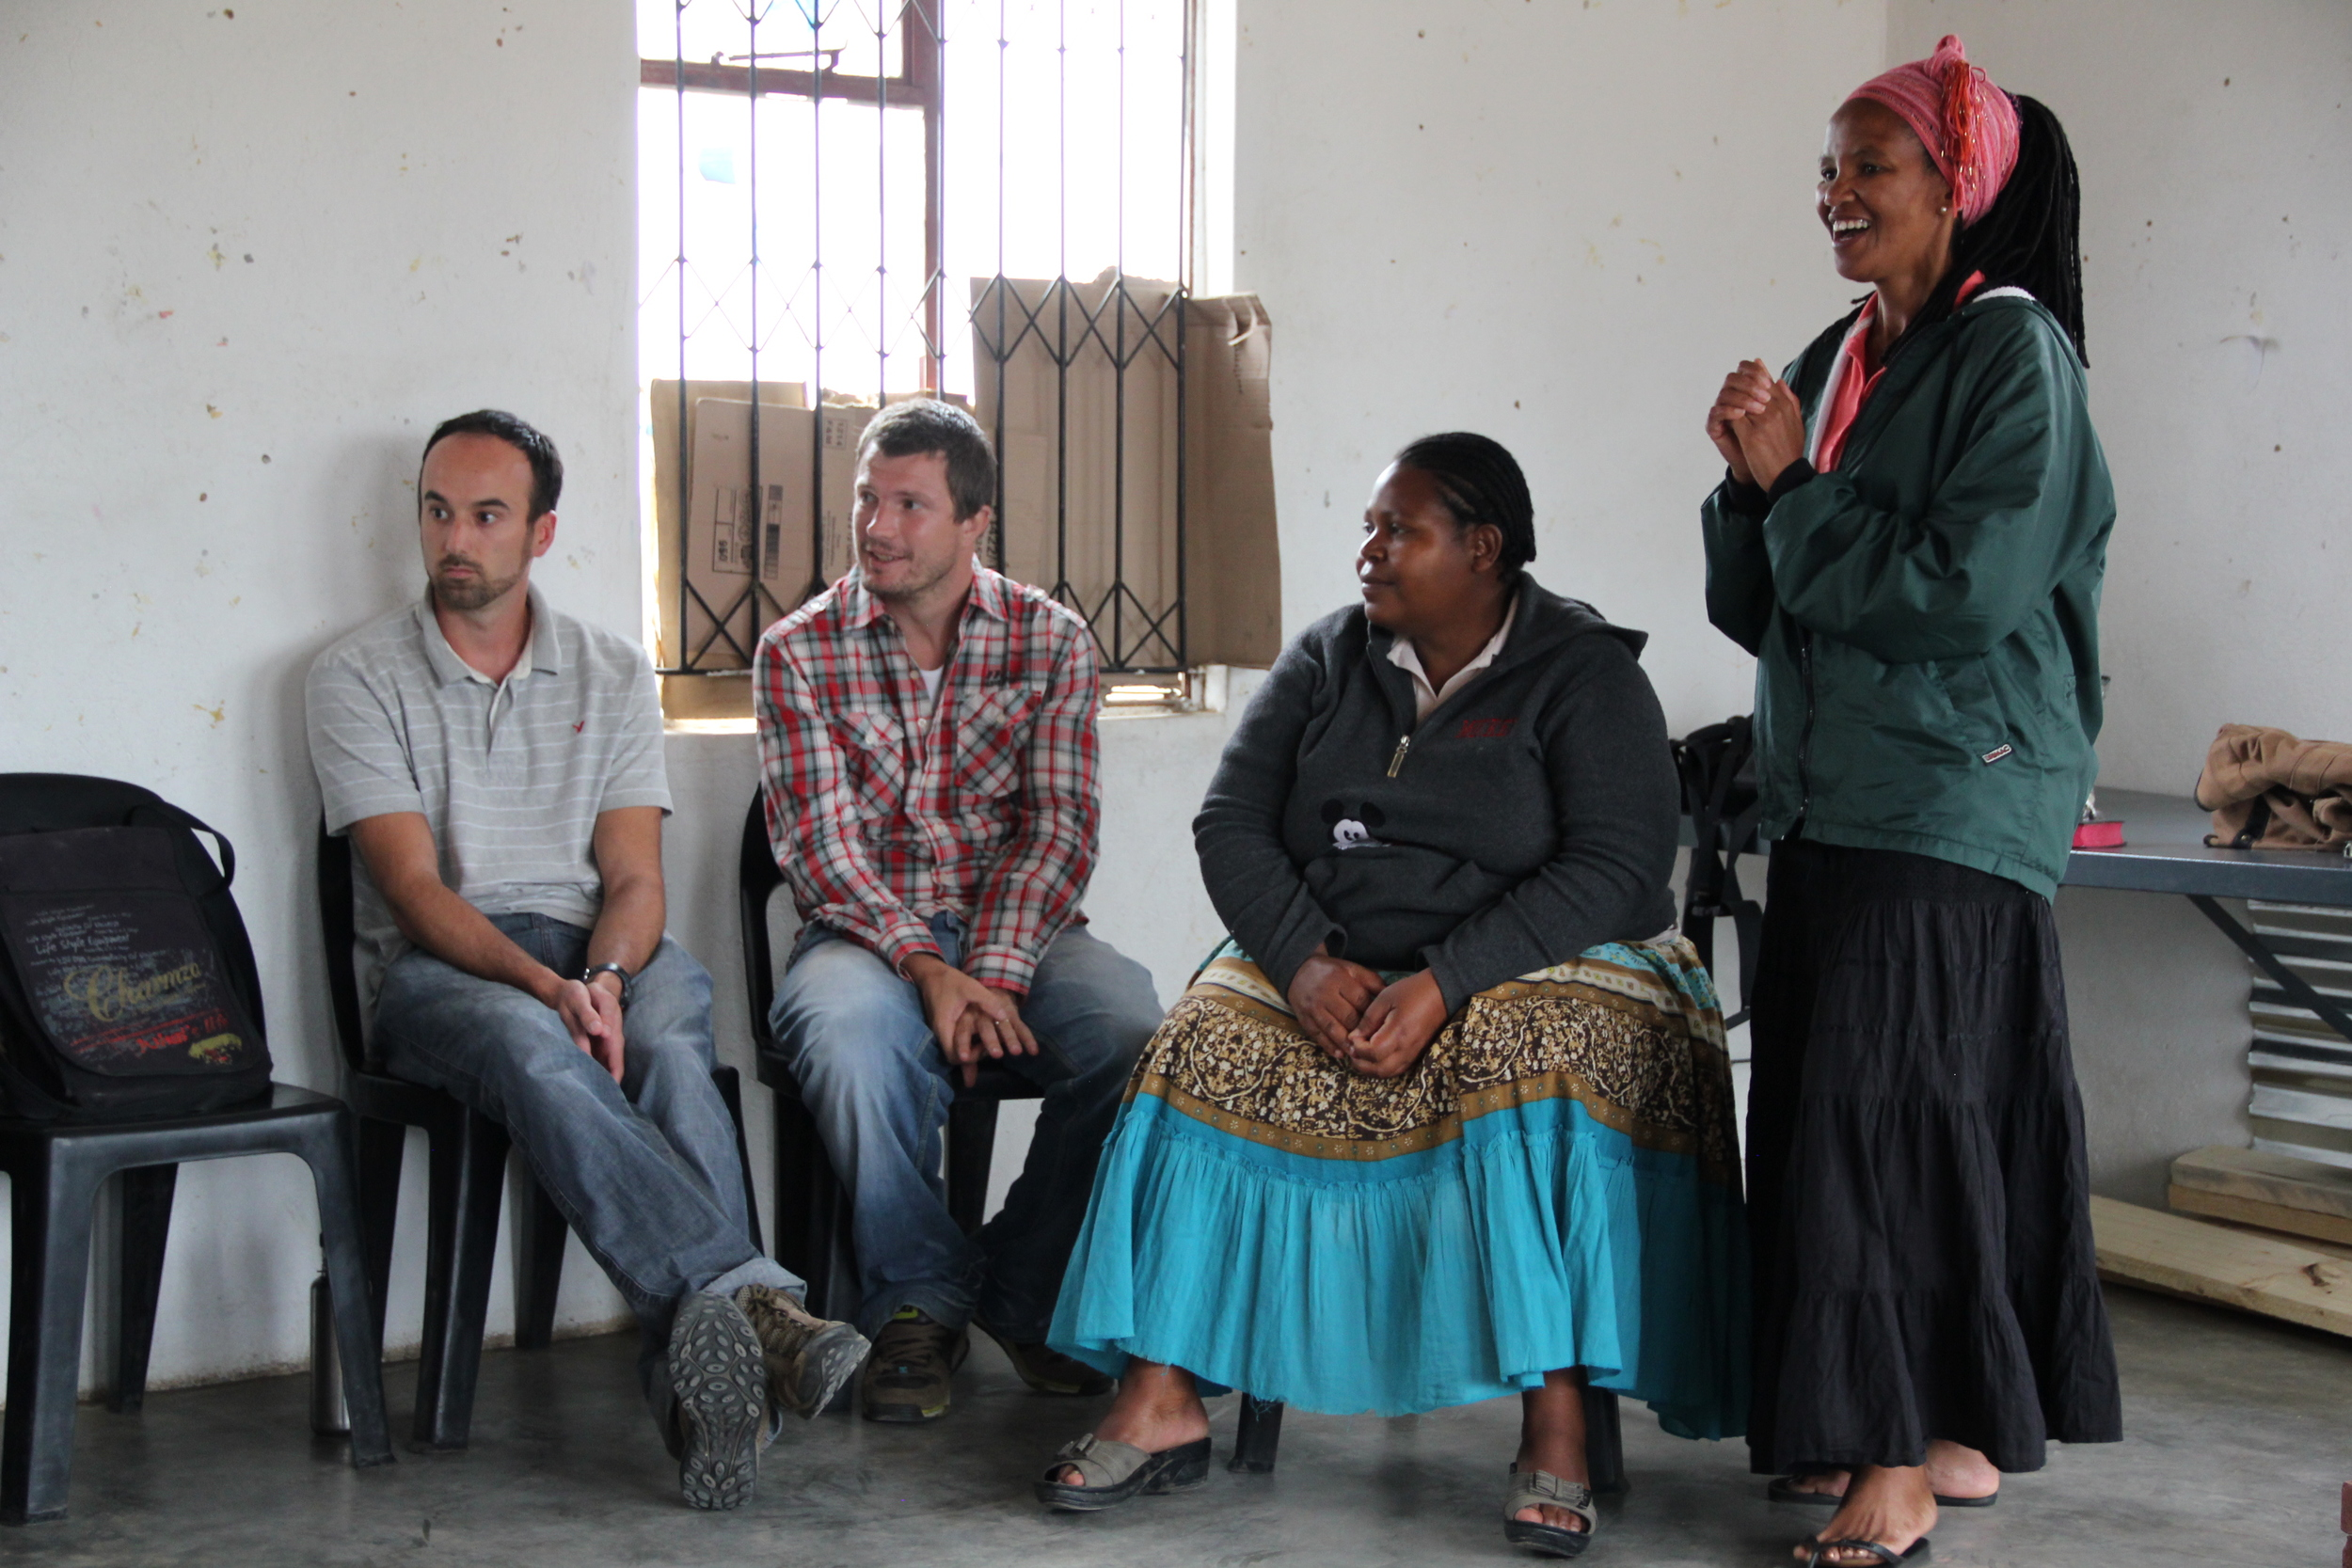 Busie with other members of the Regional Support Team: Tyler (CAN), Dan (UK) and Service Centre Coordinator, Audrey